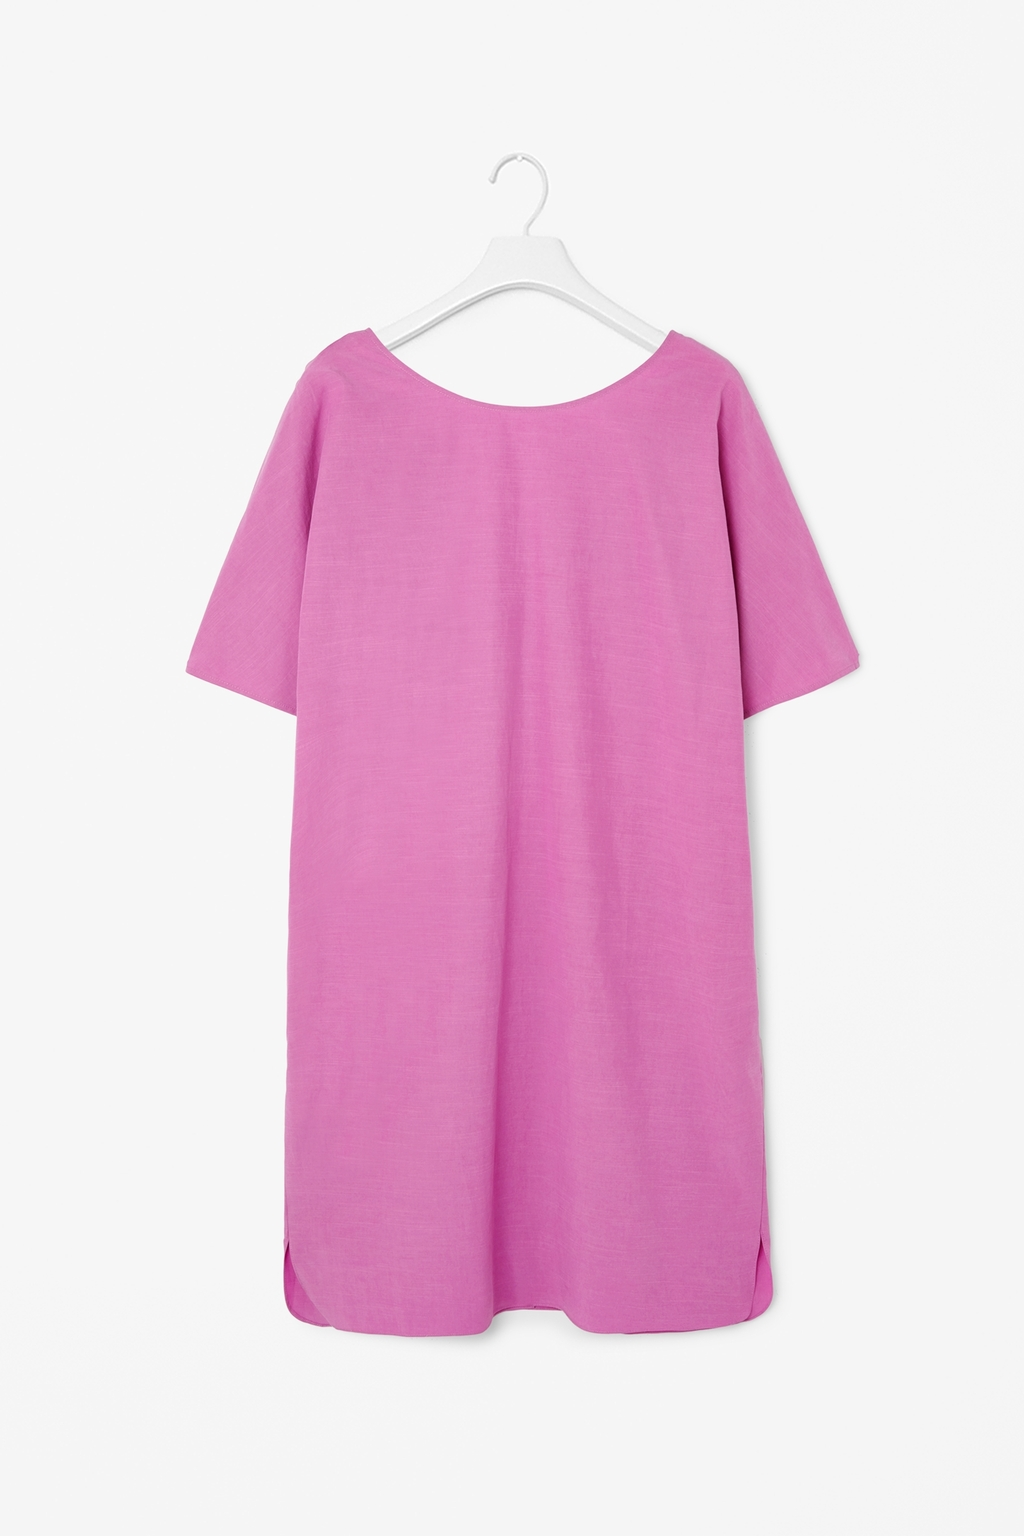 Dress With Low Back - style: tunic; neckline: round neck; pattern: plain; back detail: back revealing; predominant colour: pink; occasions: casual, evening, holiday; length: just above the knee; fit: straight cut; fibres: cotton - mix; sleeve length: short sleeve; sleeve style: standard; texture group: cotton feel fabrics; pattern type: fabric; trends: sorbet shades; season: s/s 2014